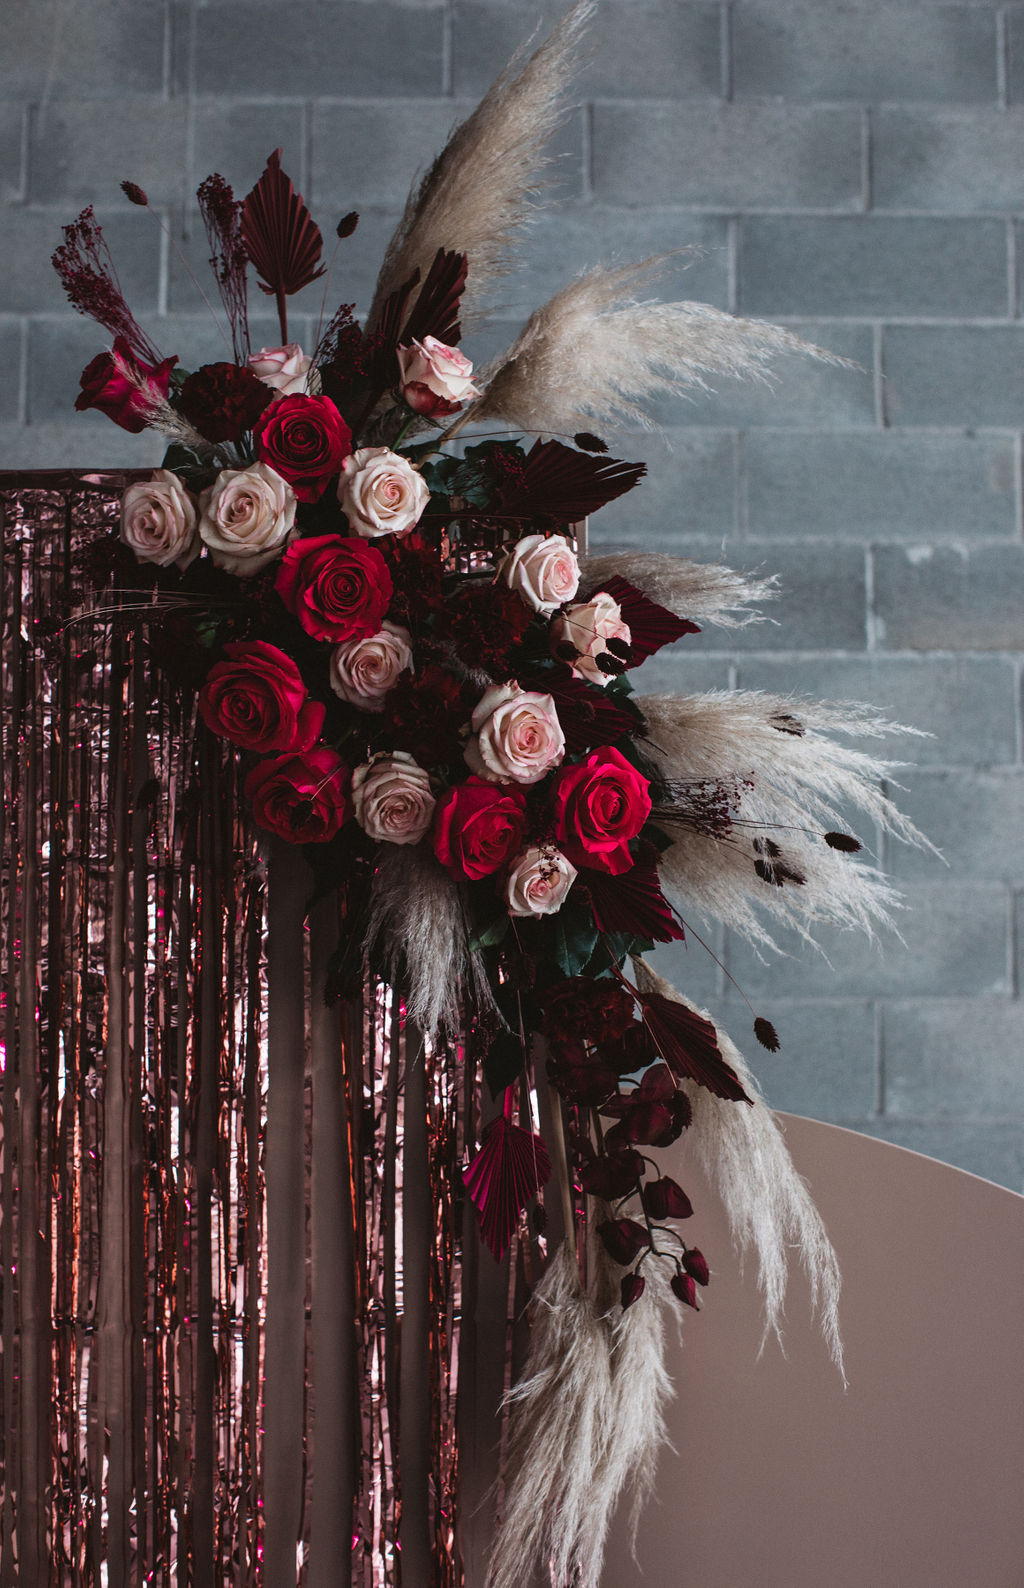 modern industrial wedding - alternative wedding - edgy wedding - unique wedding flowers - unique wedding decor